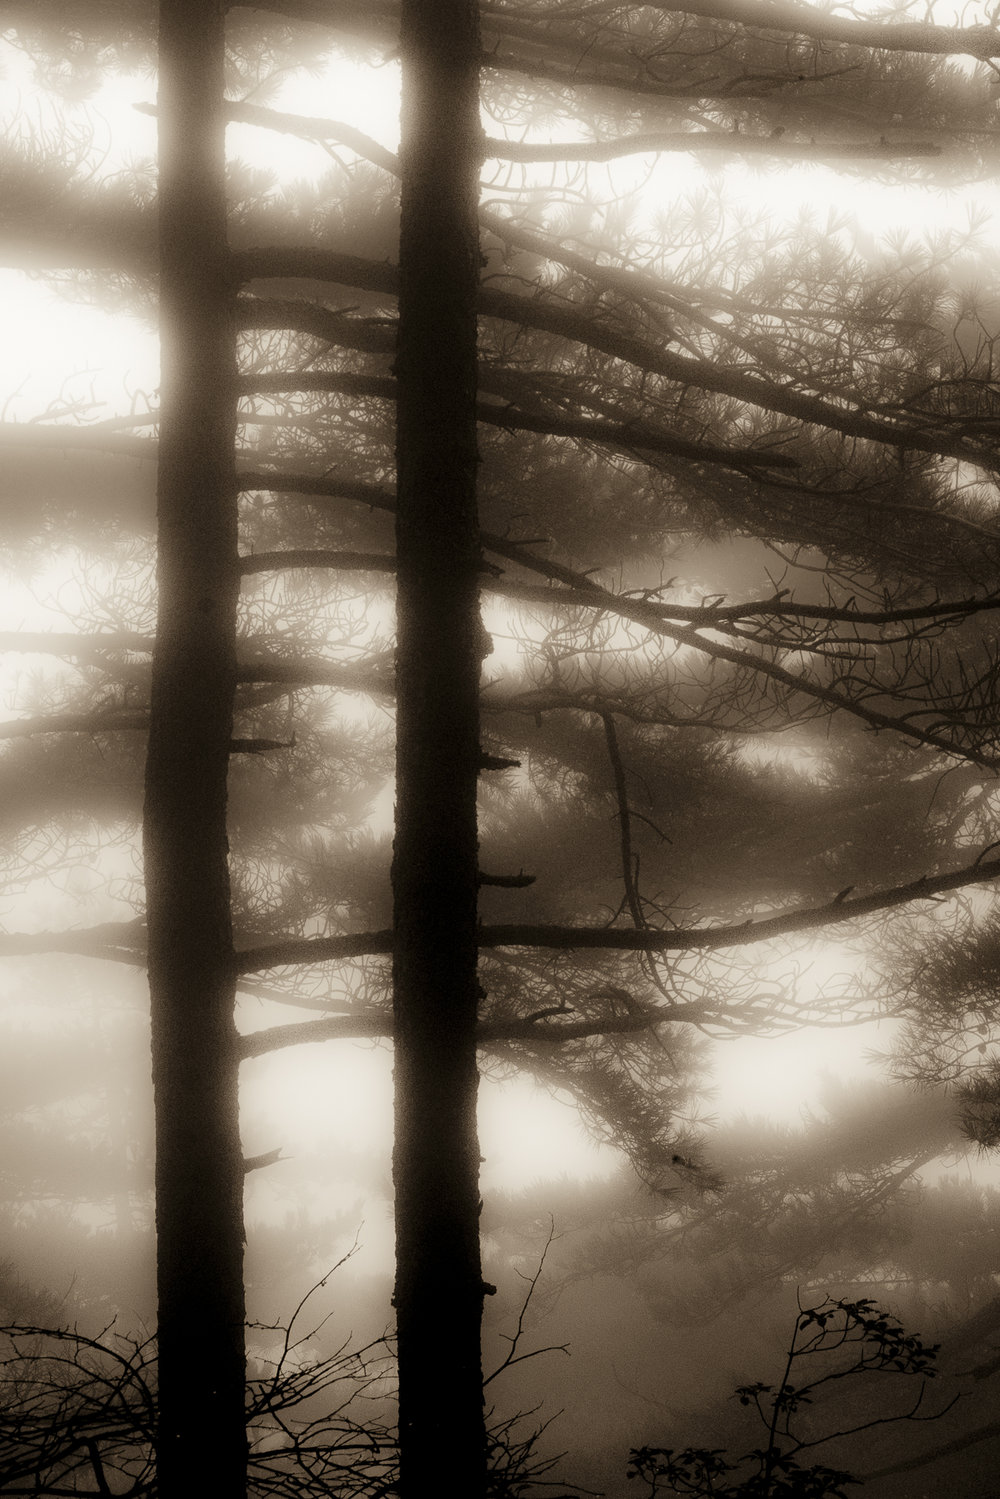 Carol_Horigan_Forest Shrouded in Mist-3V.jpg